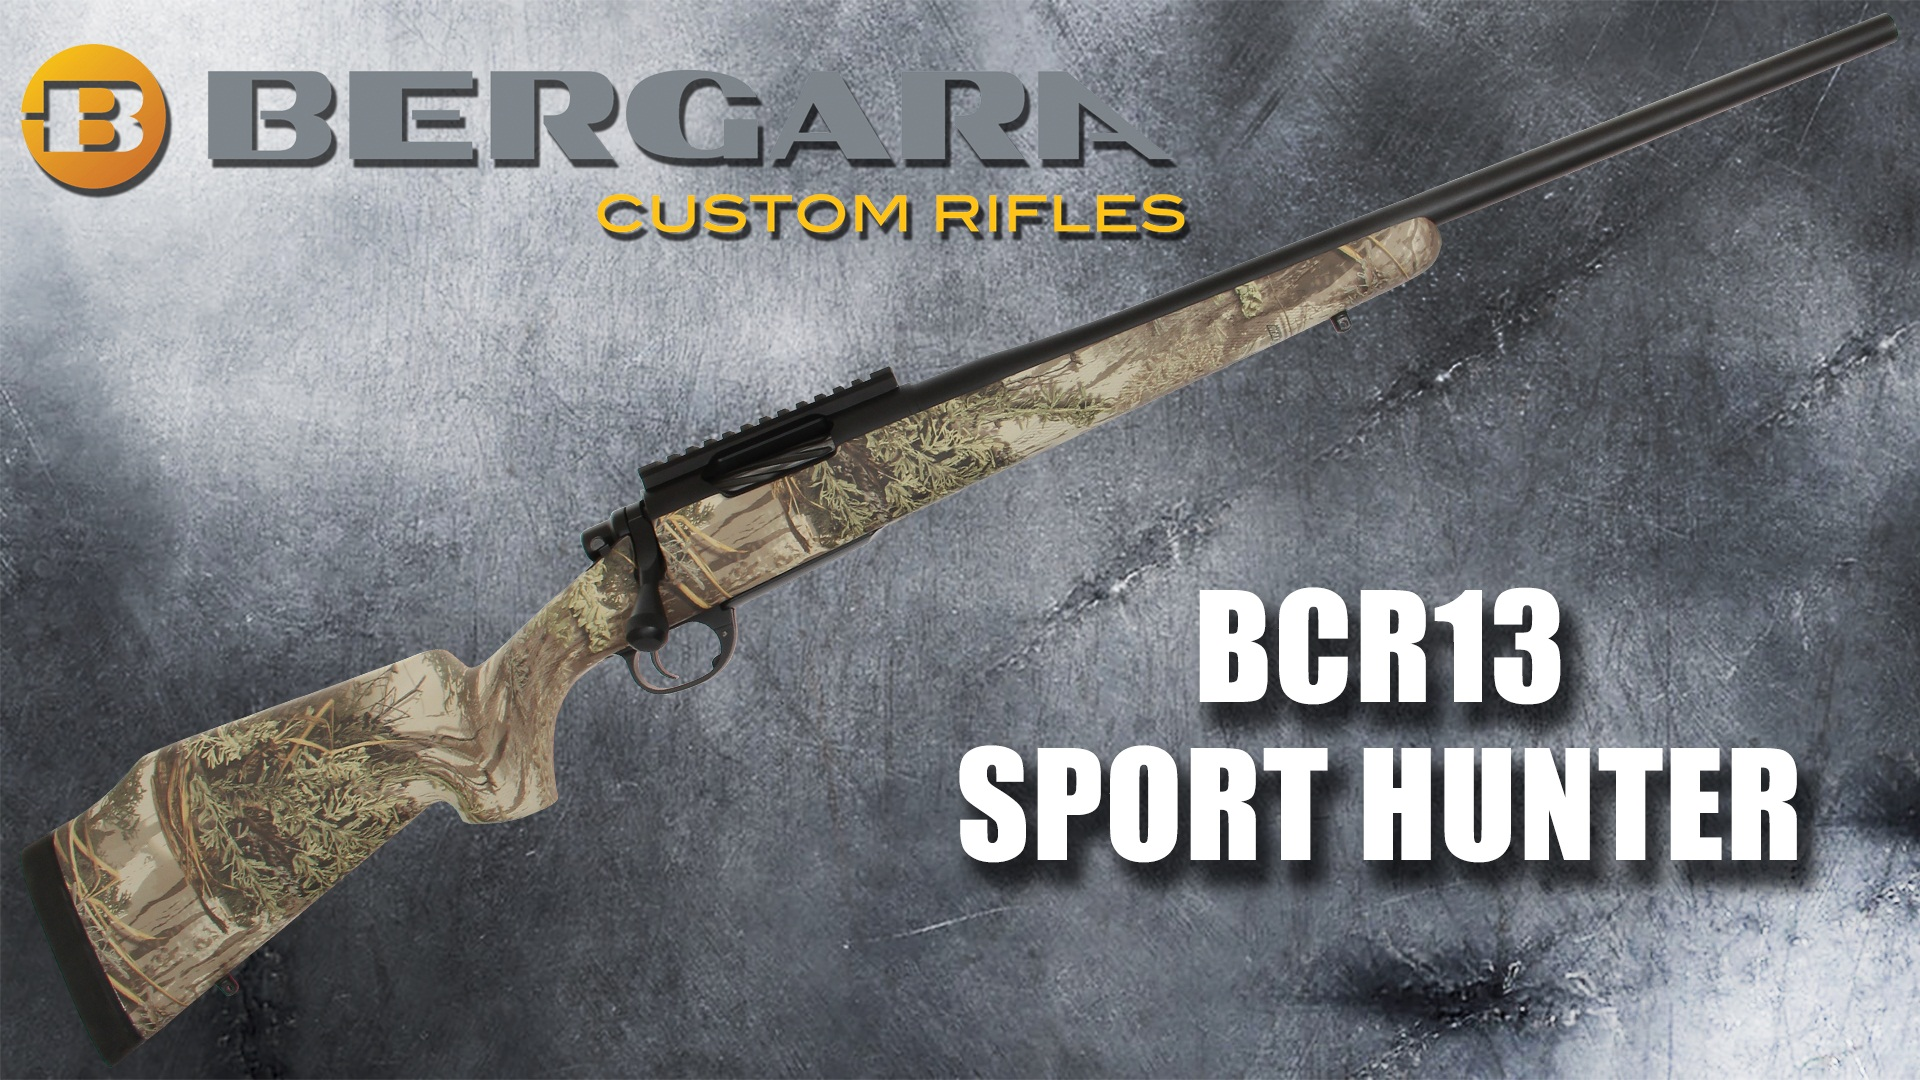 Bergara Teams Up with Realtree® and NRA for Custom Rifle